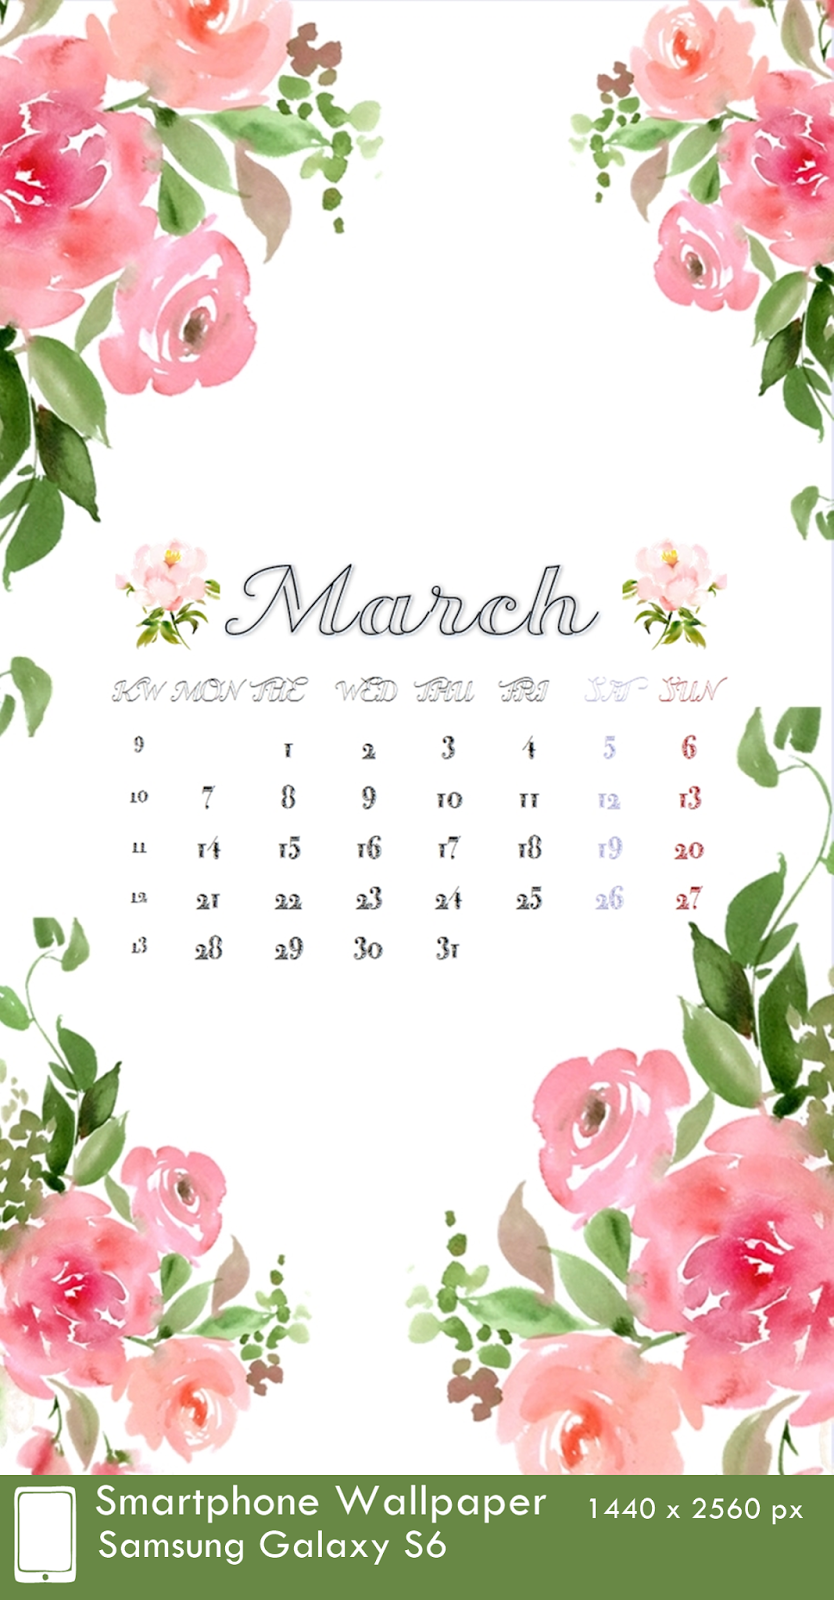 Samsung Galaxy S6 Wallpaper Calendar 3 March 1440 x 2560 px